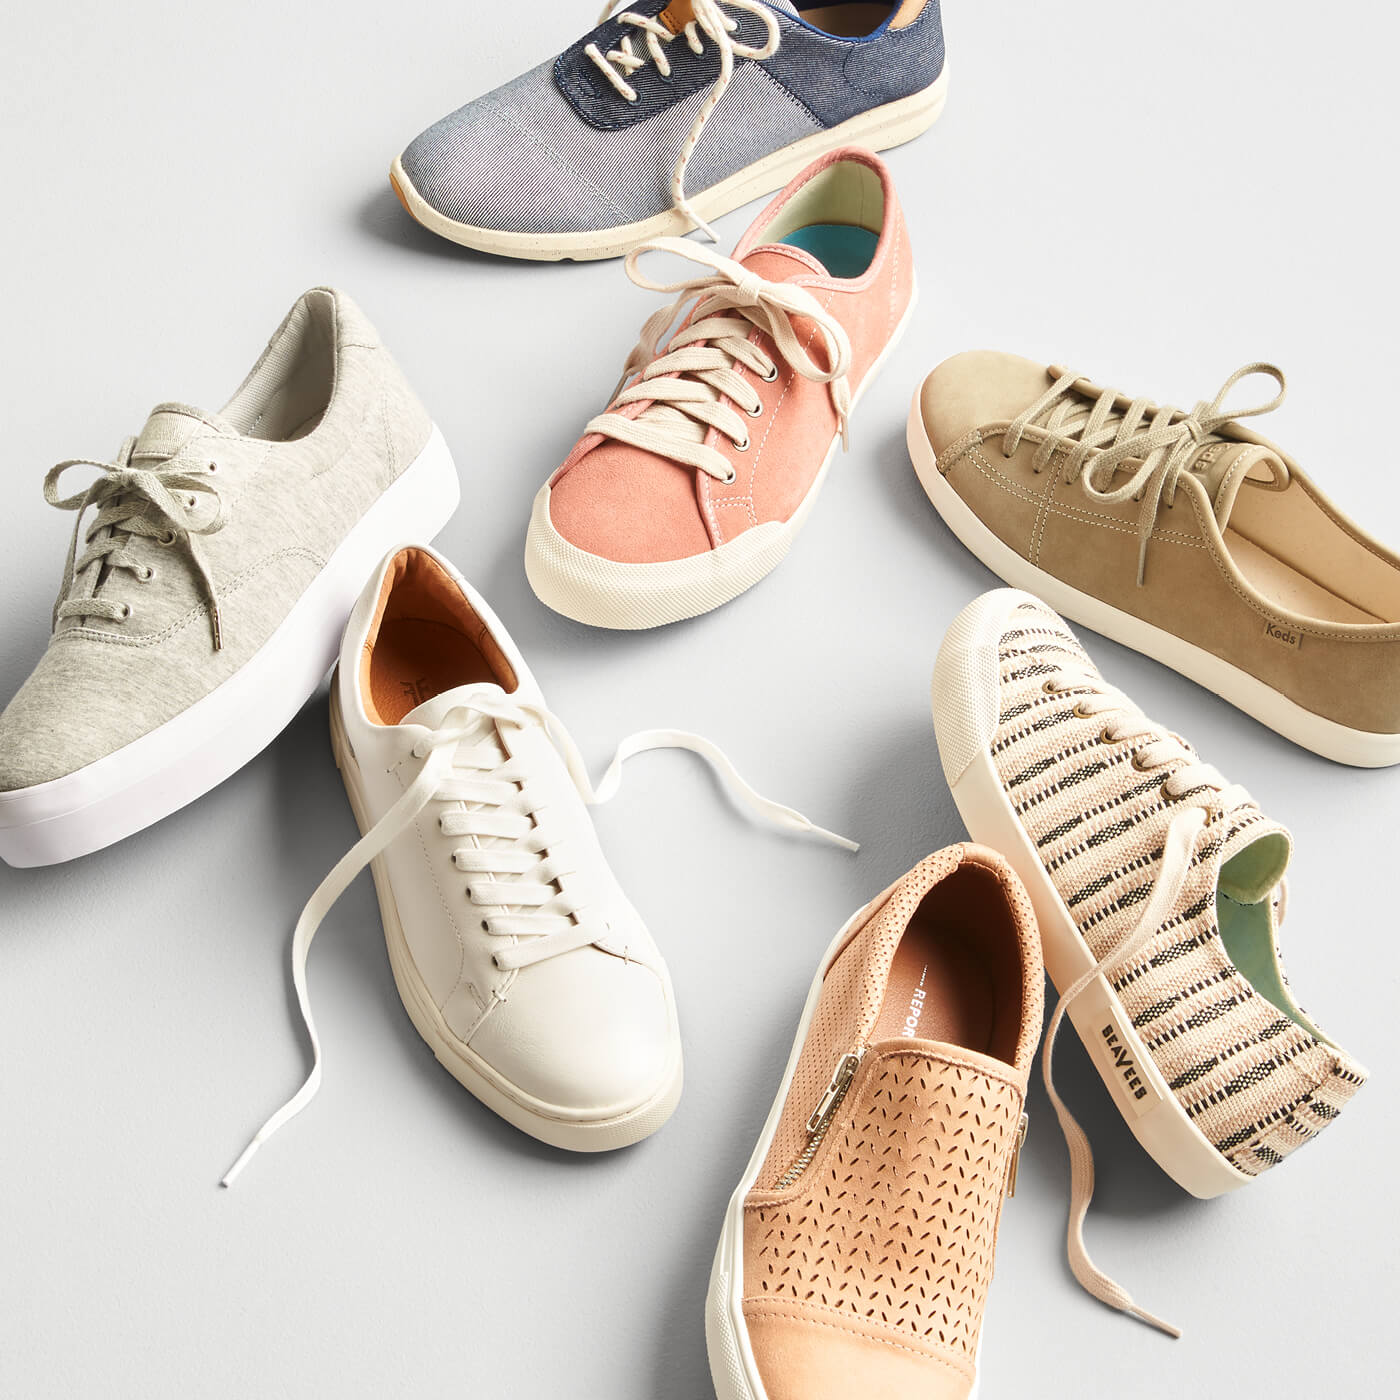 5b10f16233d2 The Latest Shoe Trends   Styles